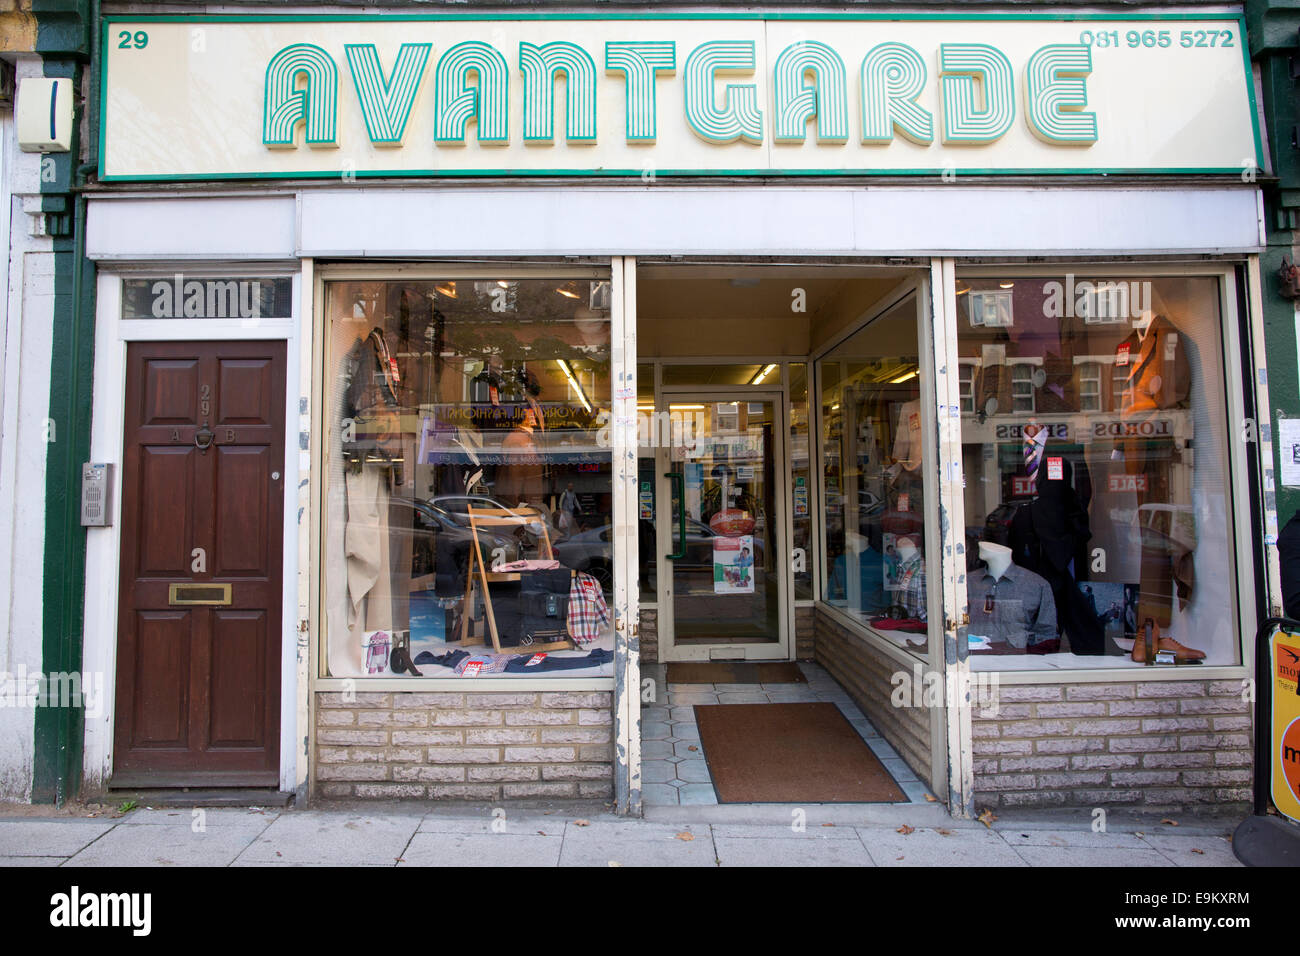 'Avantgarde' mens clothing store, Harlesden, Northwest London, England, UK - Stock Image